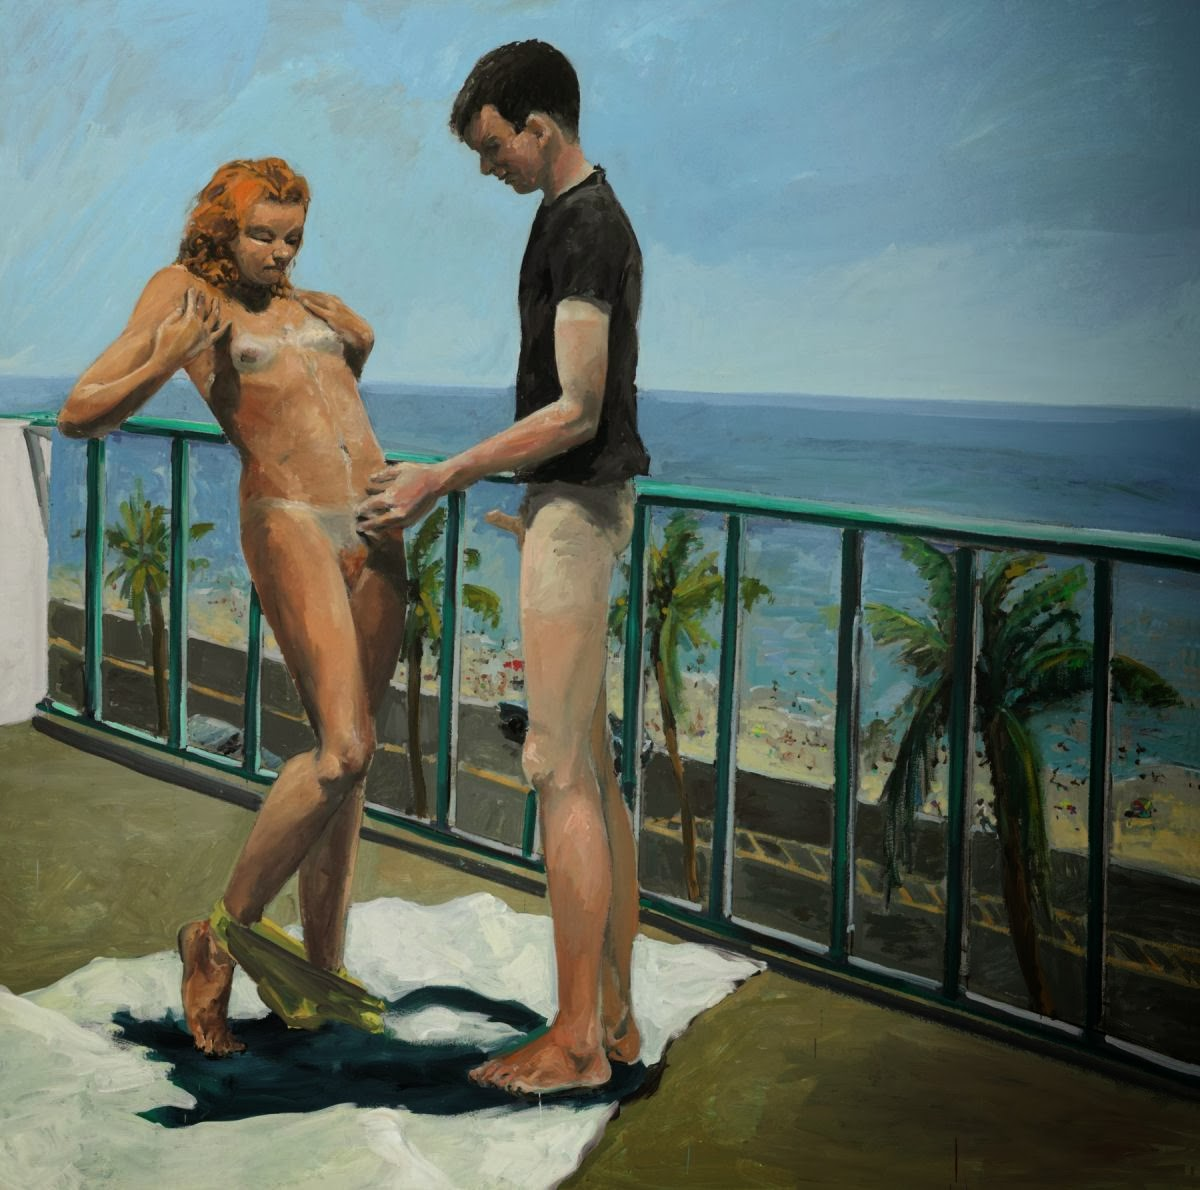 http://3.bp.blogspot.com/-YwFXBe43pbA/Uv0gS4f6U8I/AAAAAAAAFmI/ehqBu5wj4GM/s1600/1983_Eric_Fischl_Dog-Days-right.jpg